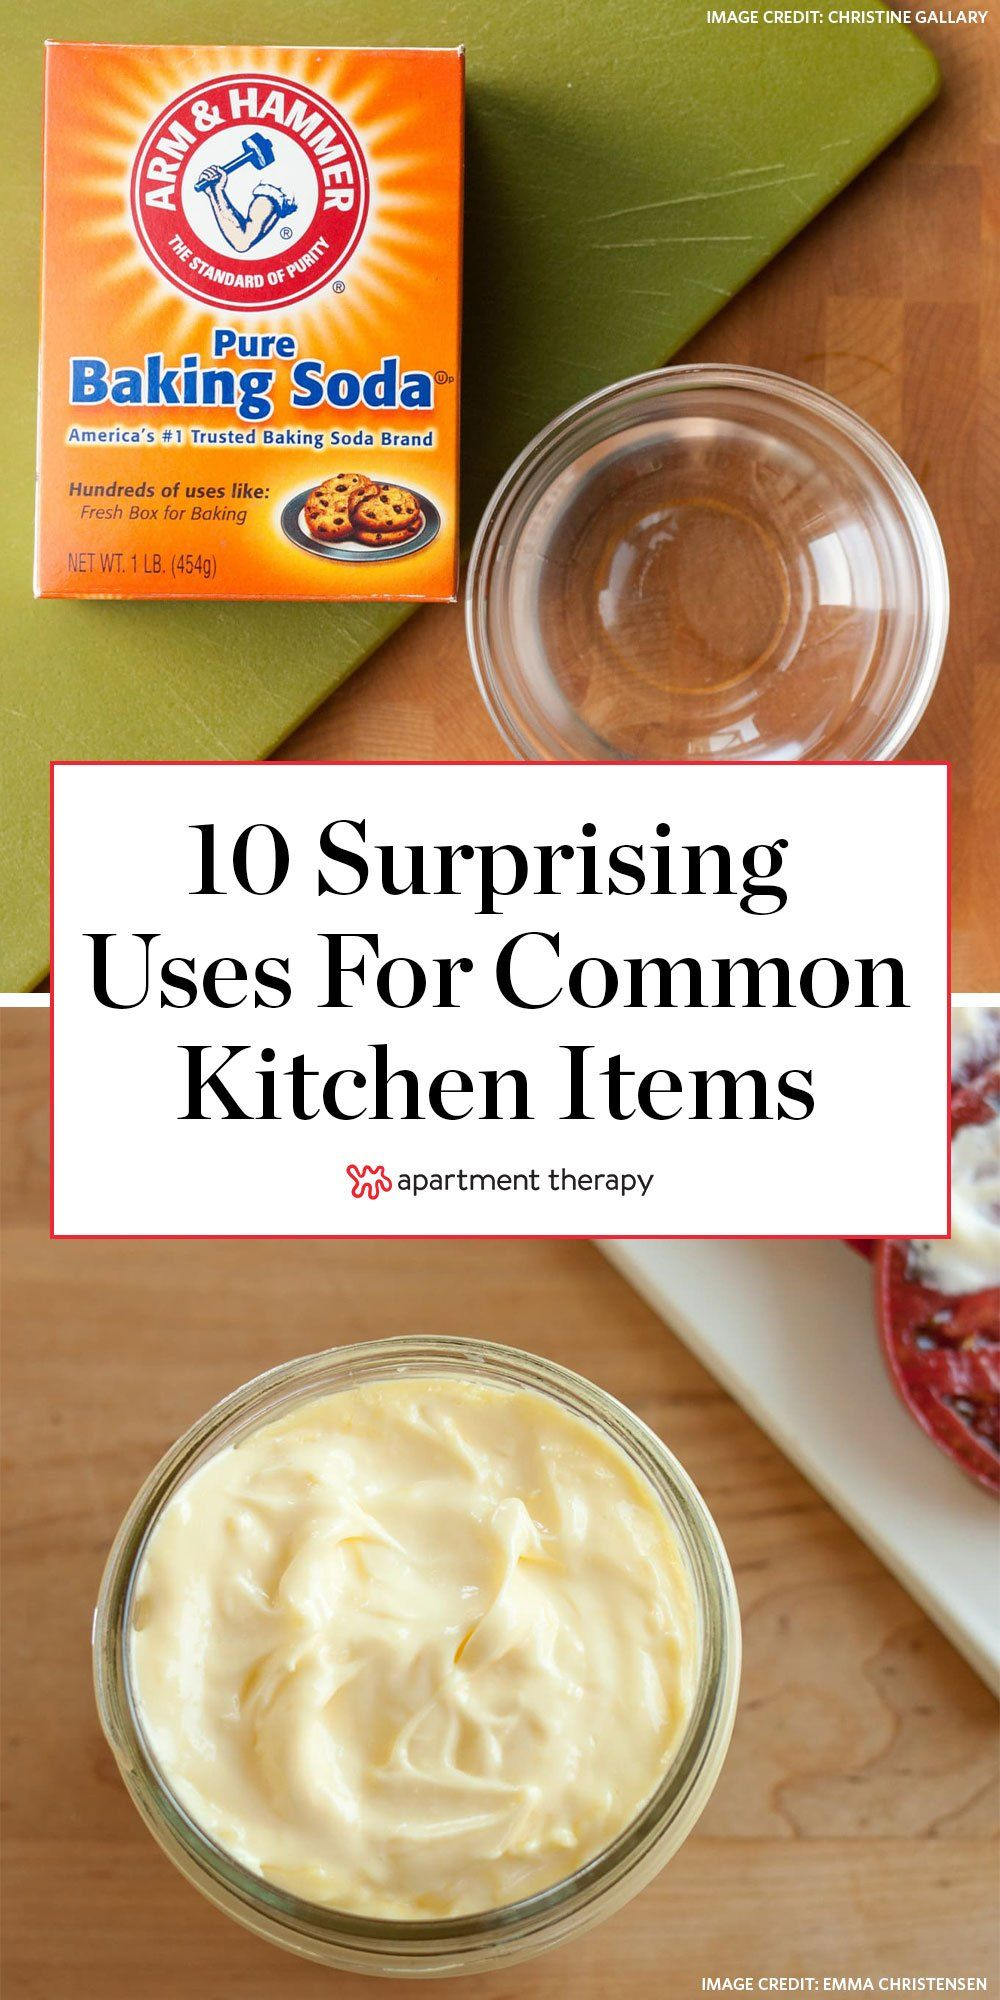 Here are 10 surprising uses for kitchen items around the rest of the house, from baking soda to coffee grounds and mayonnaise. #lifehacks #kitchentools #kitchenhacks #kitchenideas #cleaninghacks #cleaningideas #cleaningtips